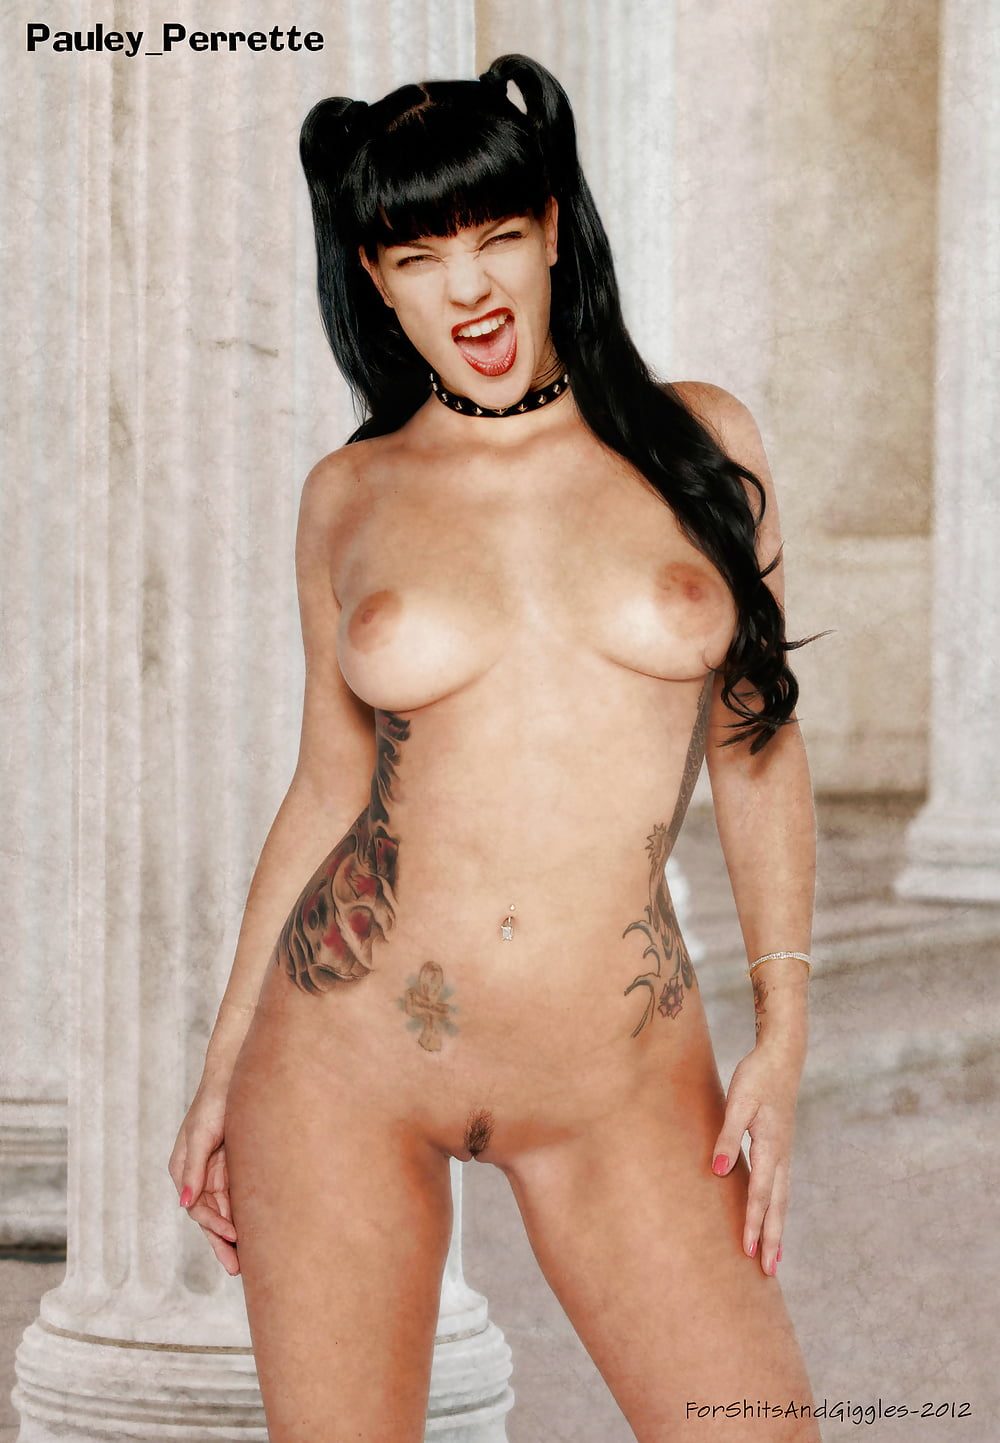 Goth girl from ncis nude — img 4